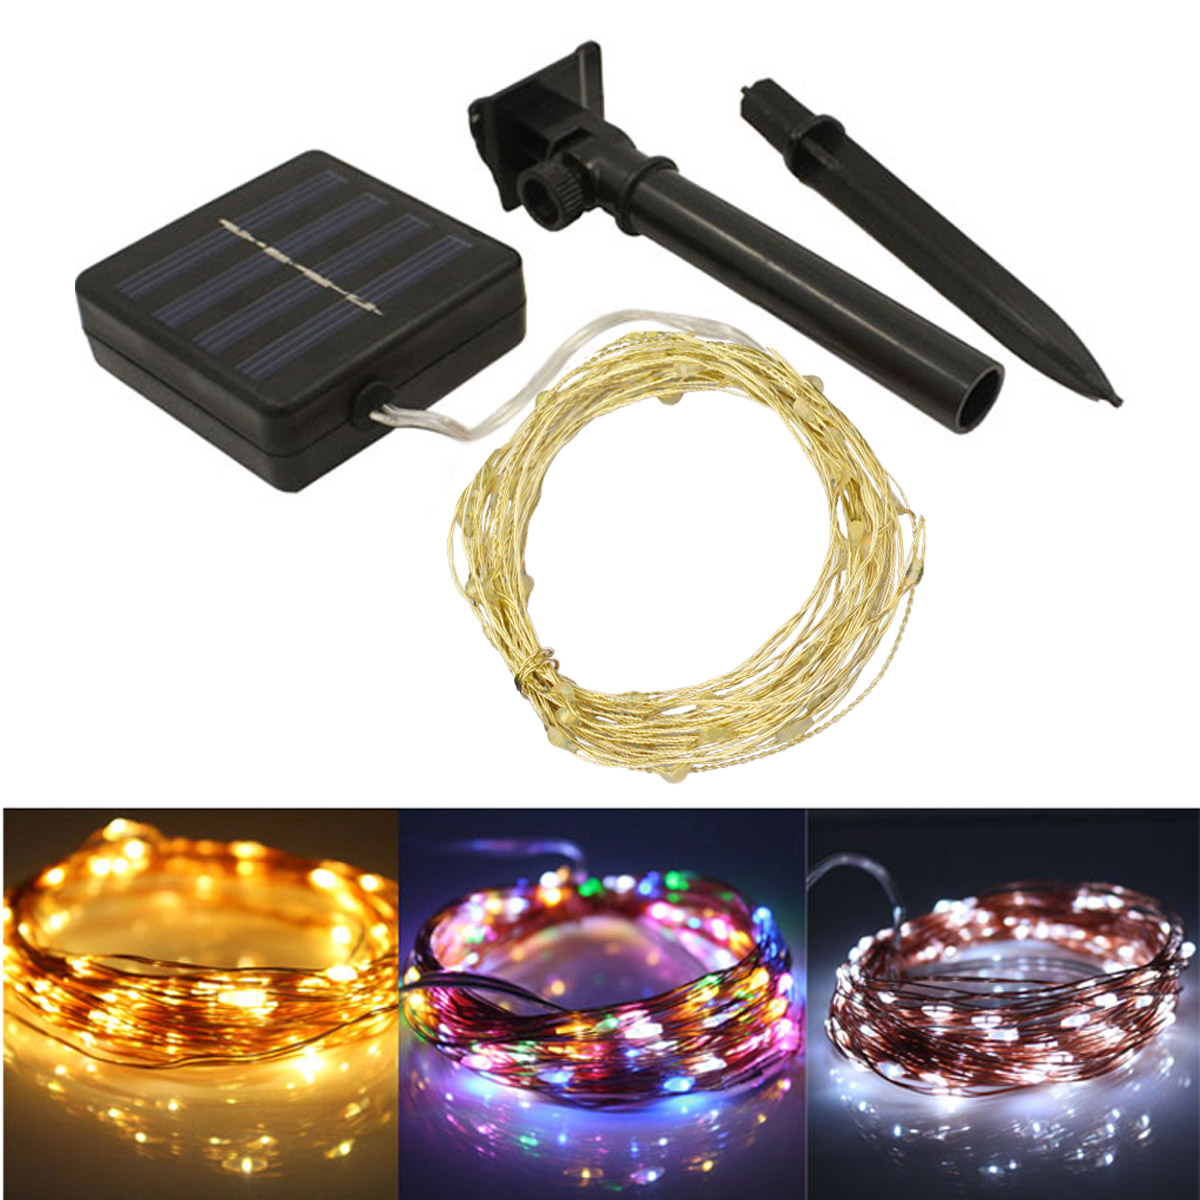 Jiawen 100 LED Solar String Lights, 33Ft (10M) Copper Wire Lights, Christmas Party String Lights